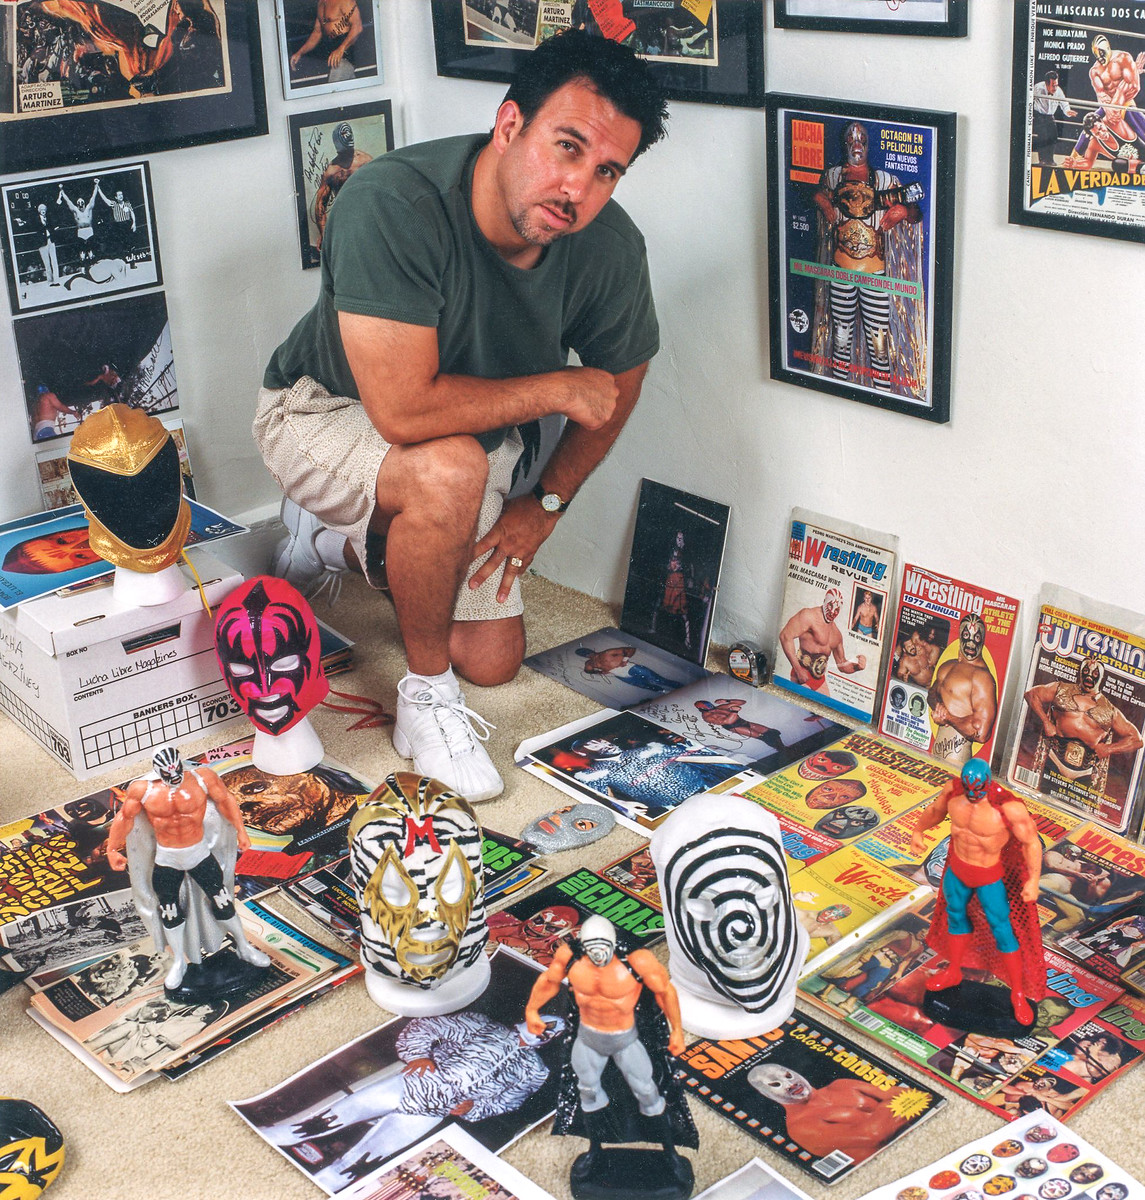 Lucha Promoter with collection